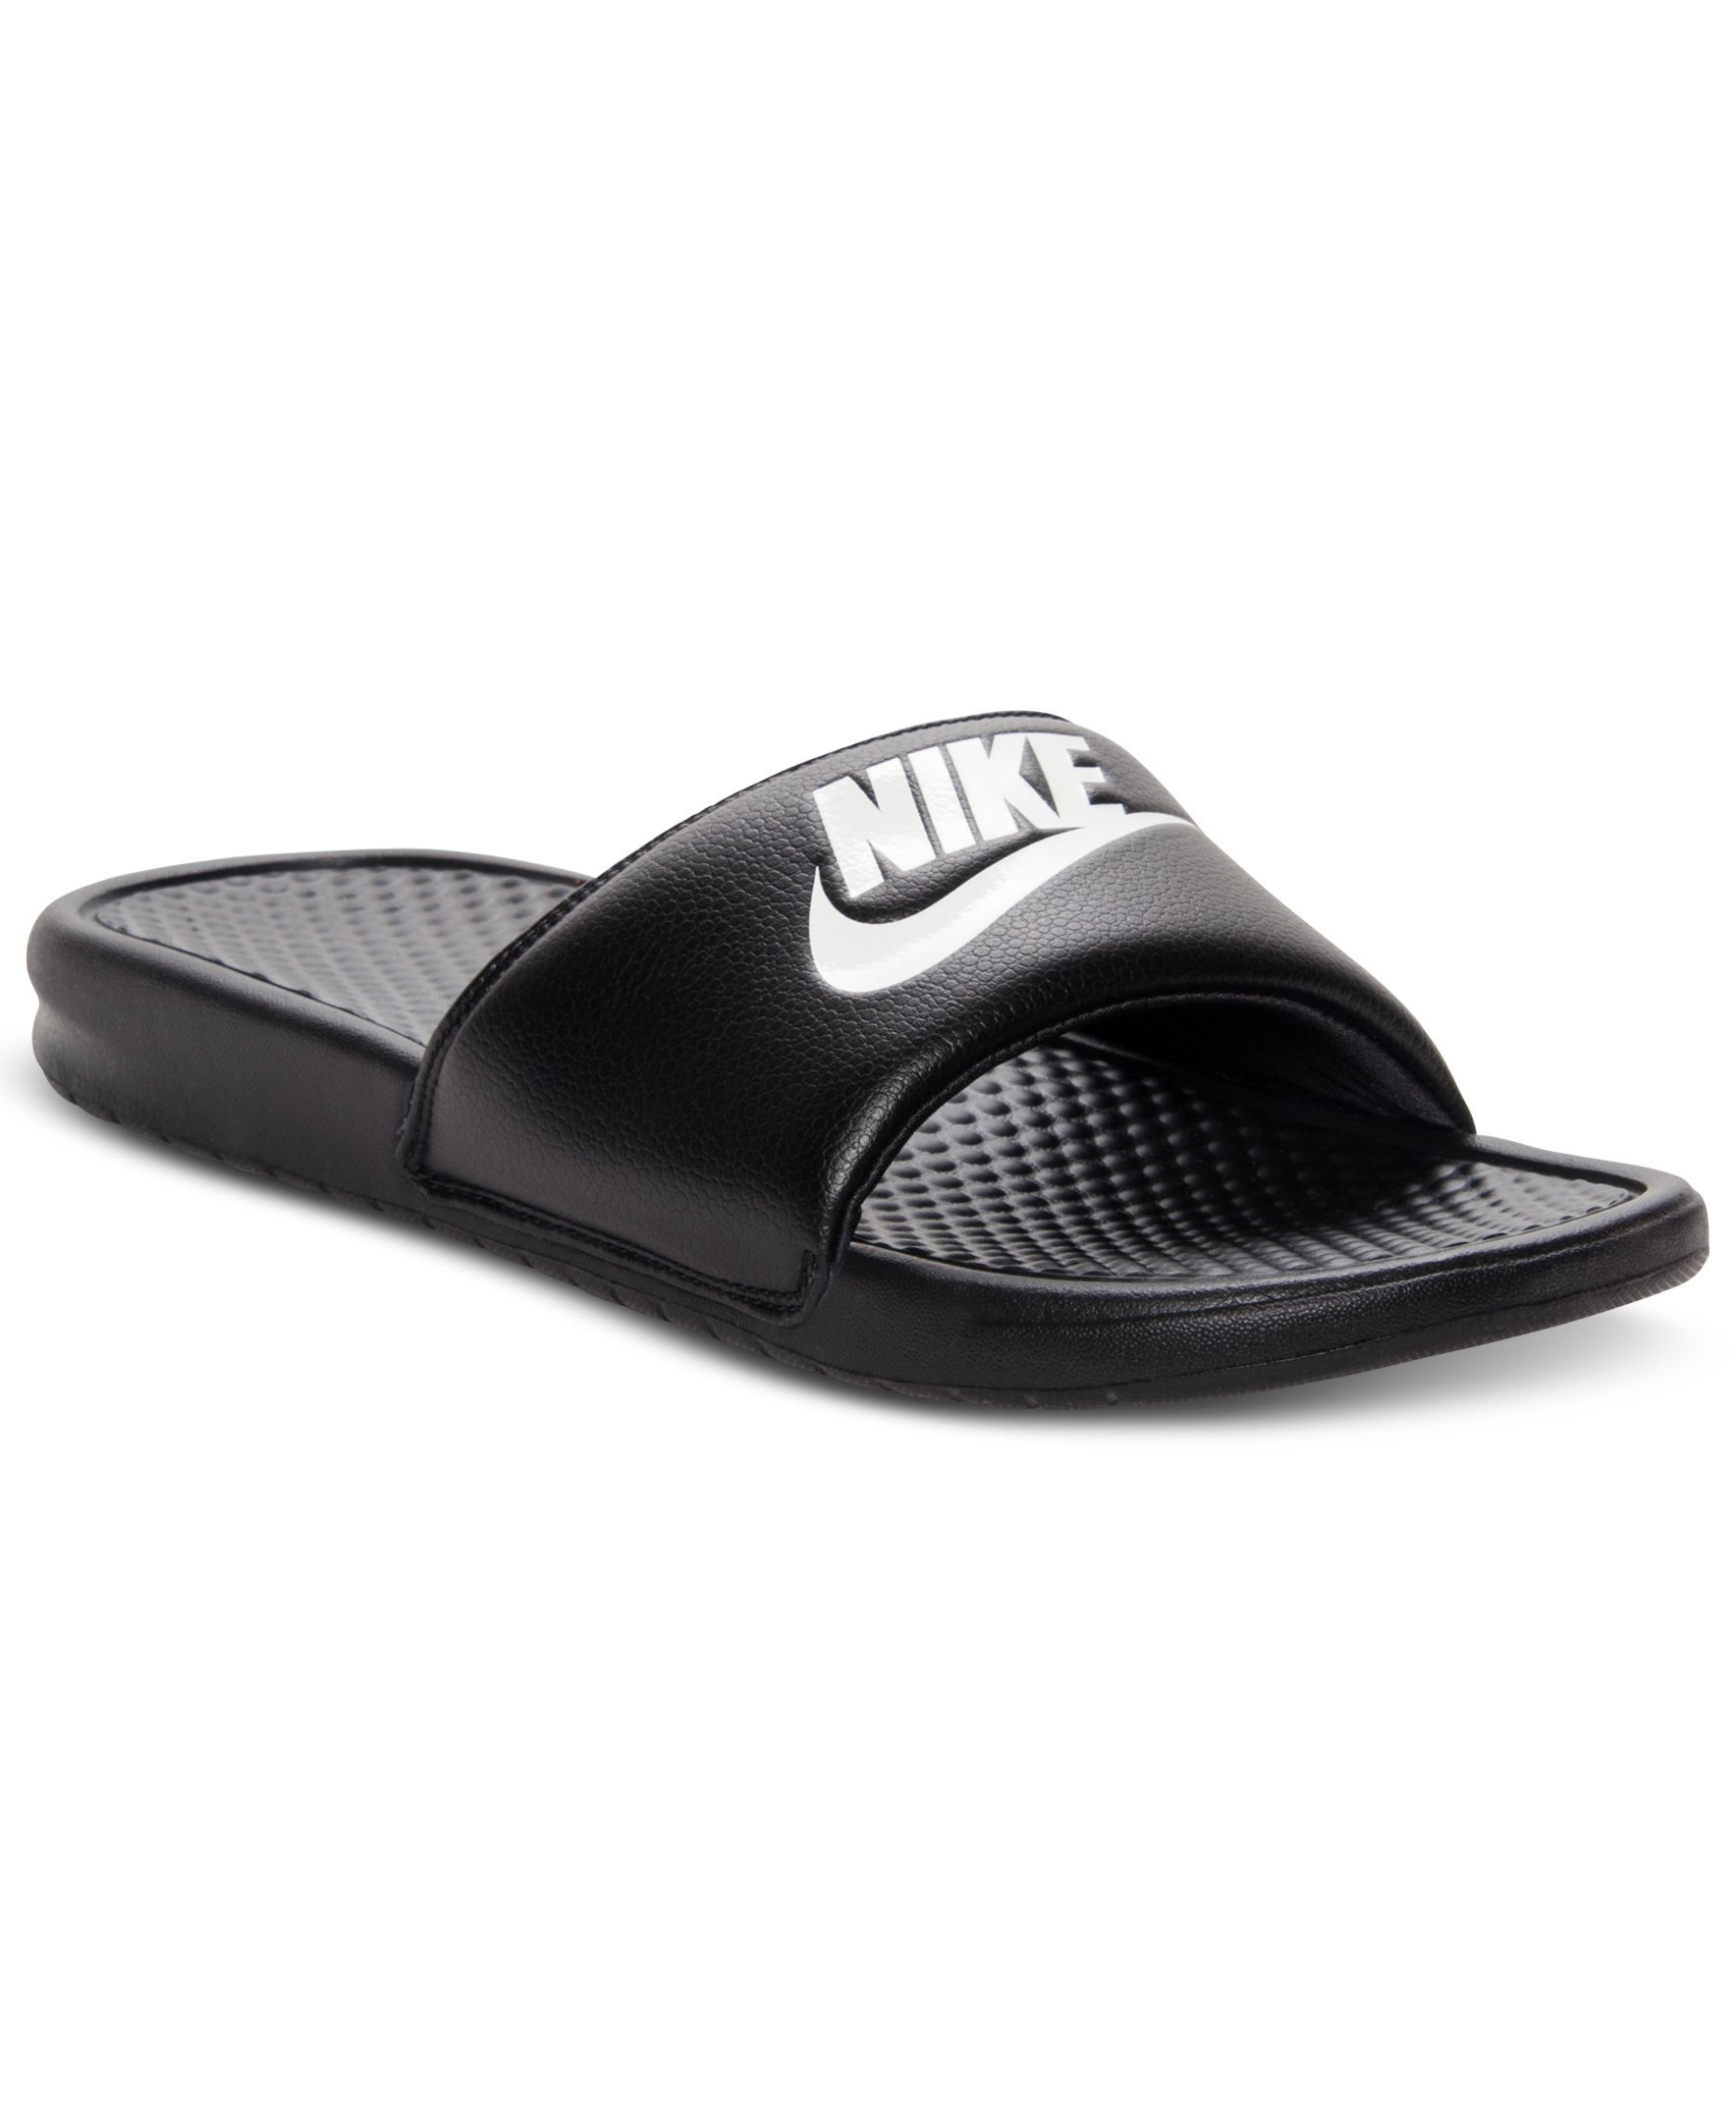 3eb6238ed02d Nike Men s Benassi Just Do It Slide Sandals from Finish Line